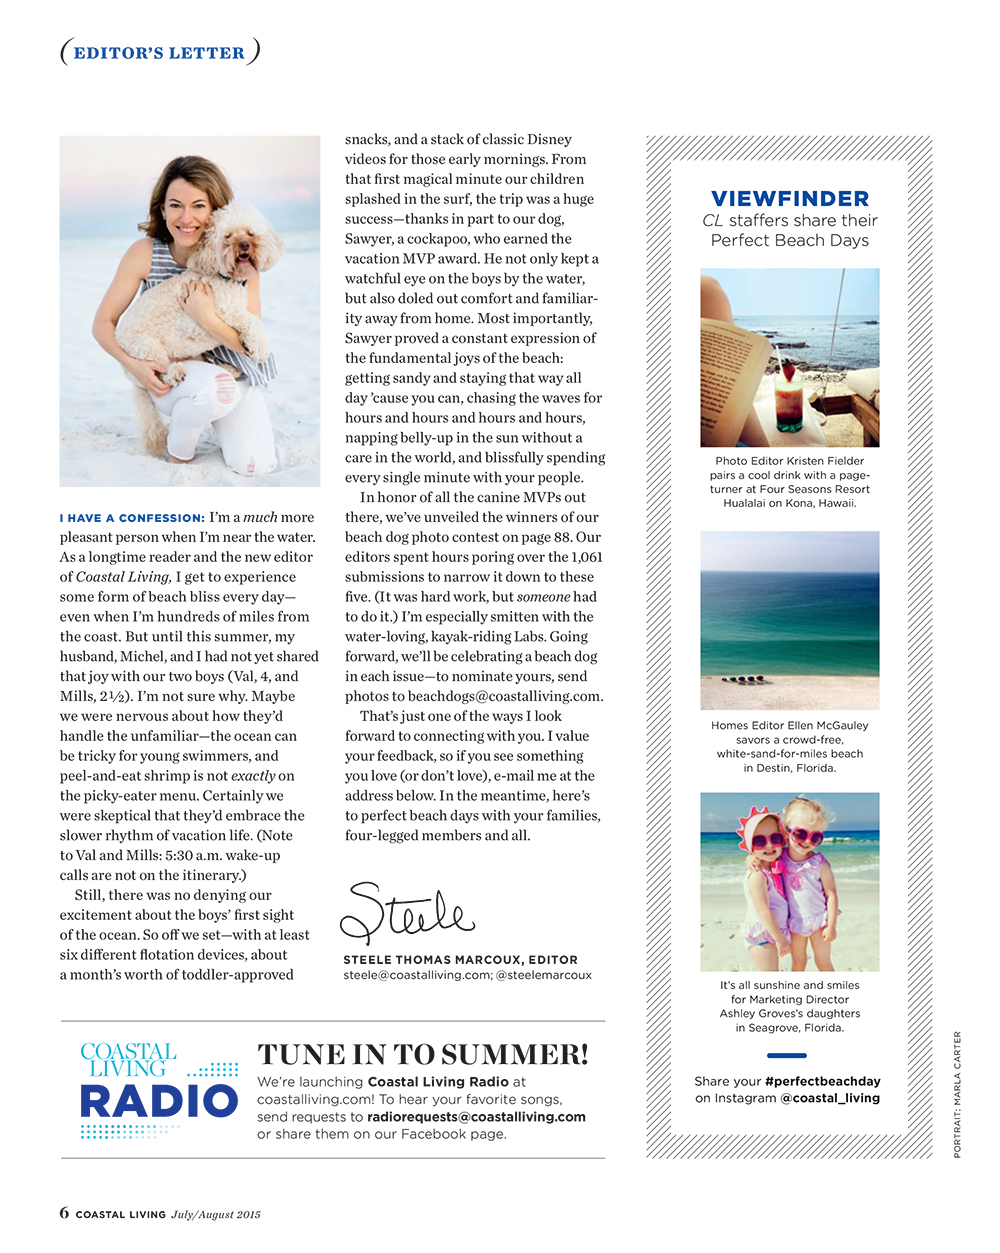 Coastal-Living-July-August-2015